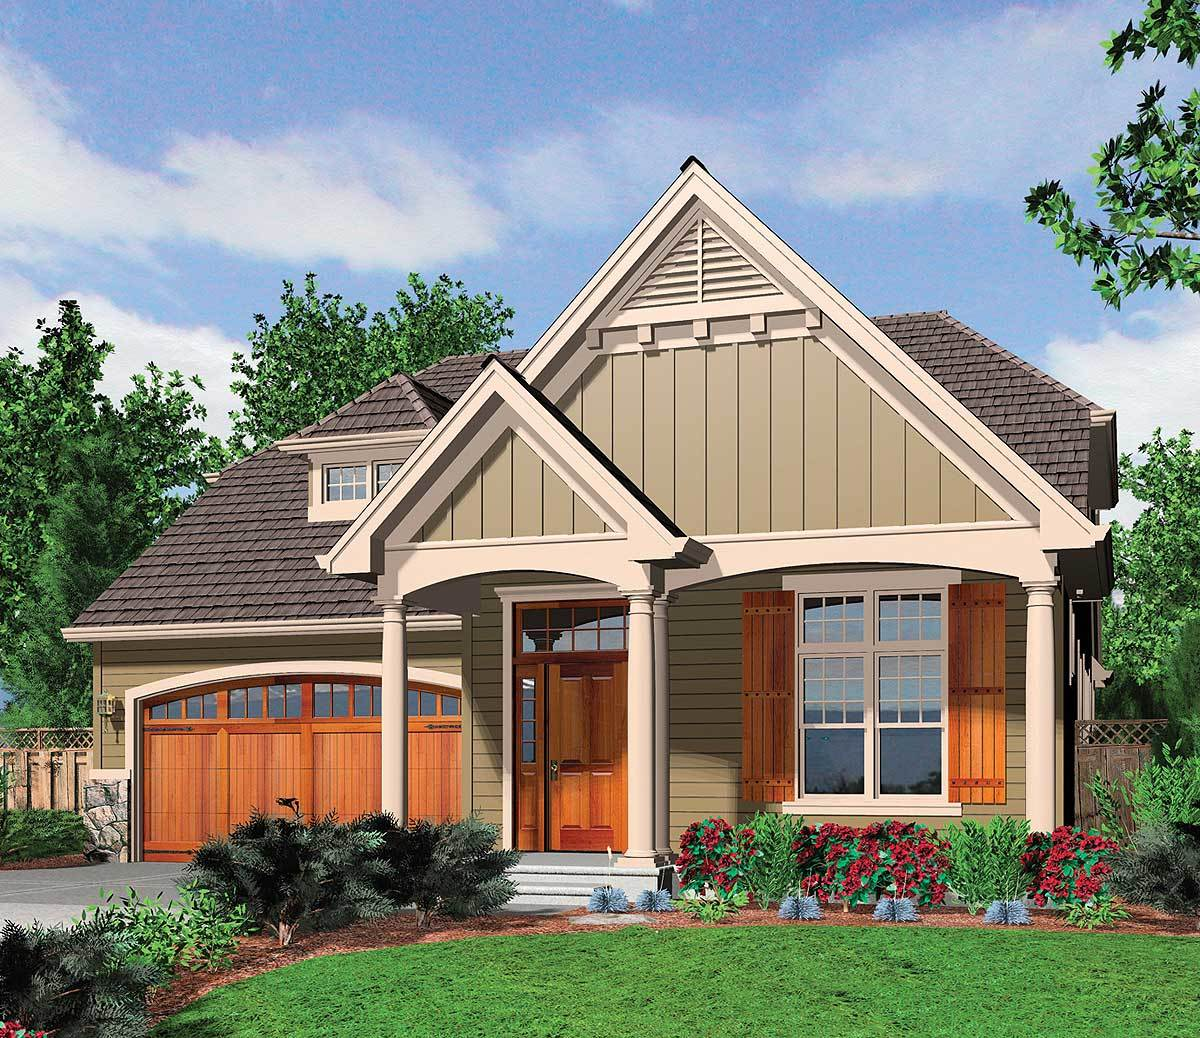 French cottage home plan 69054am architectural designs for French cottage home plans